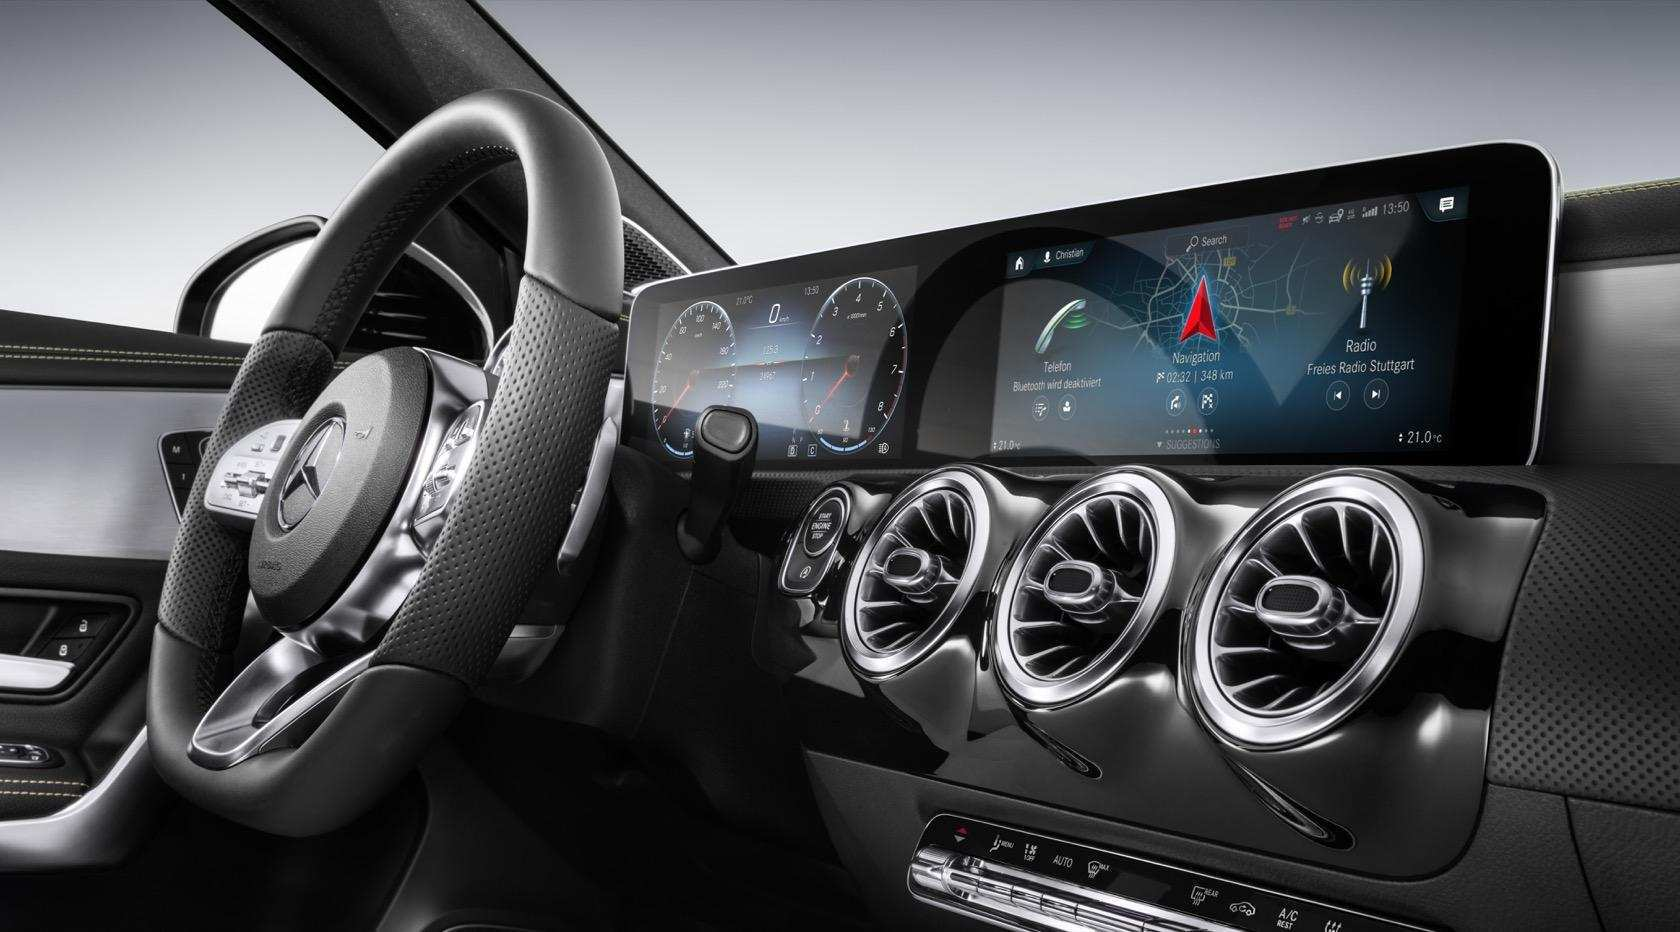 74 All New Mercedes A Class 2019 Interior Performance and New Engine with Mercedes A Class 2019 Interior